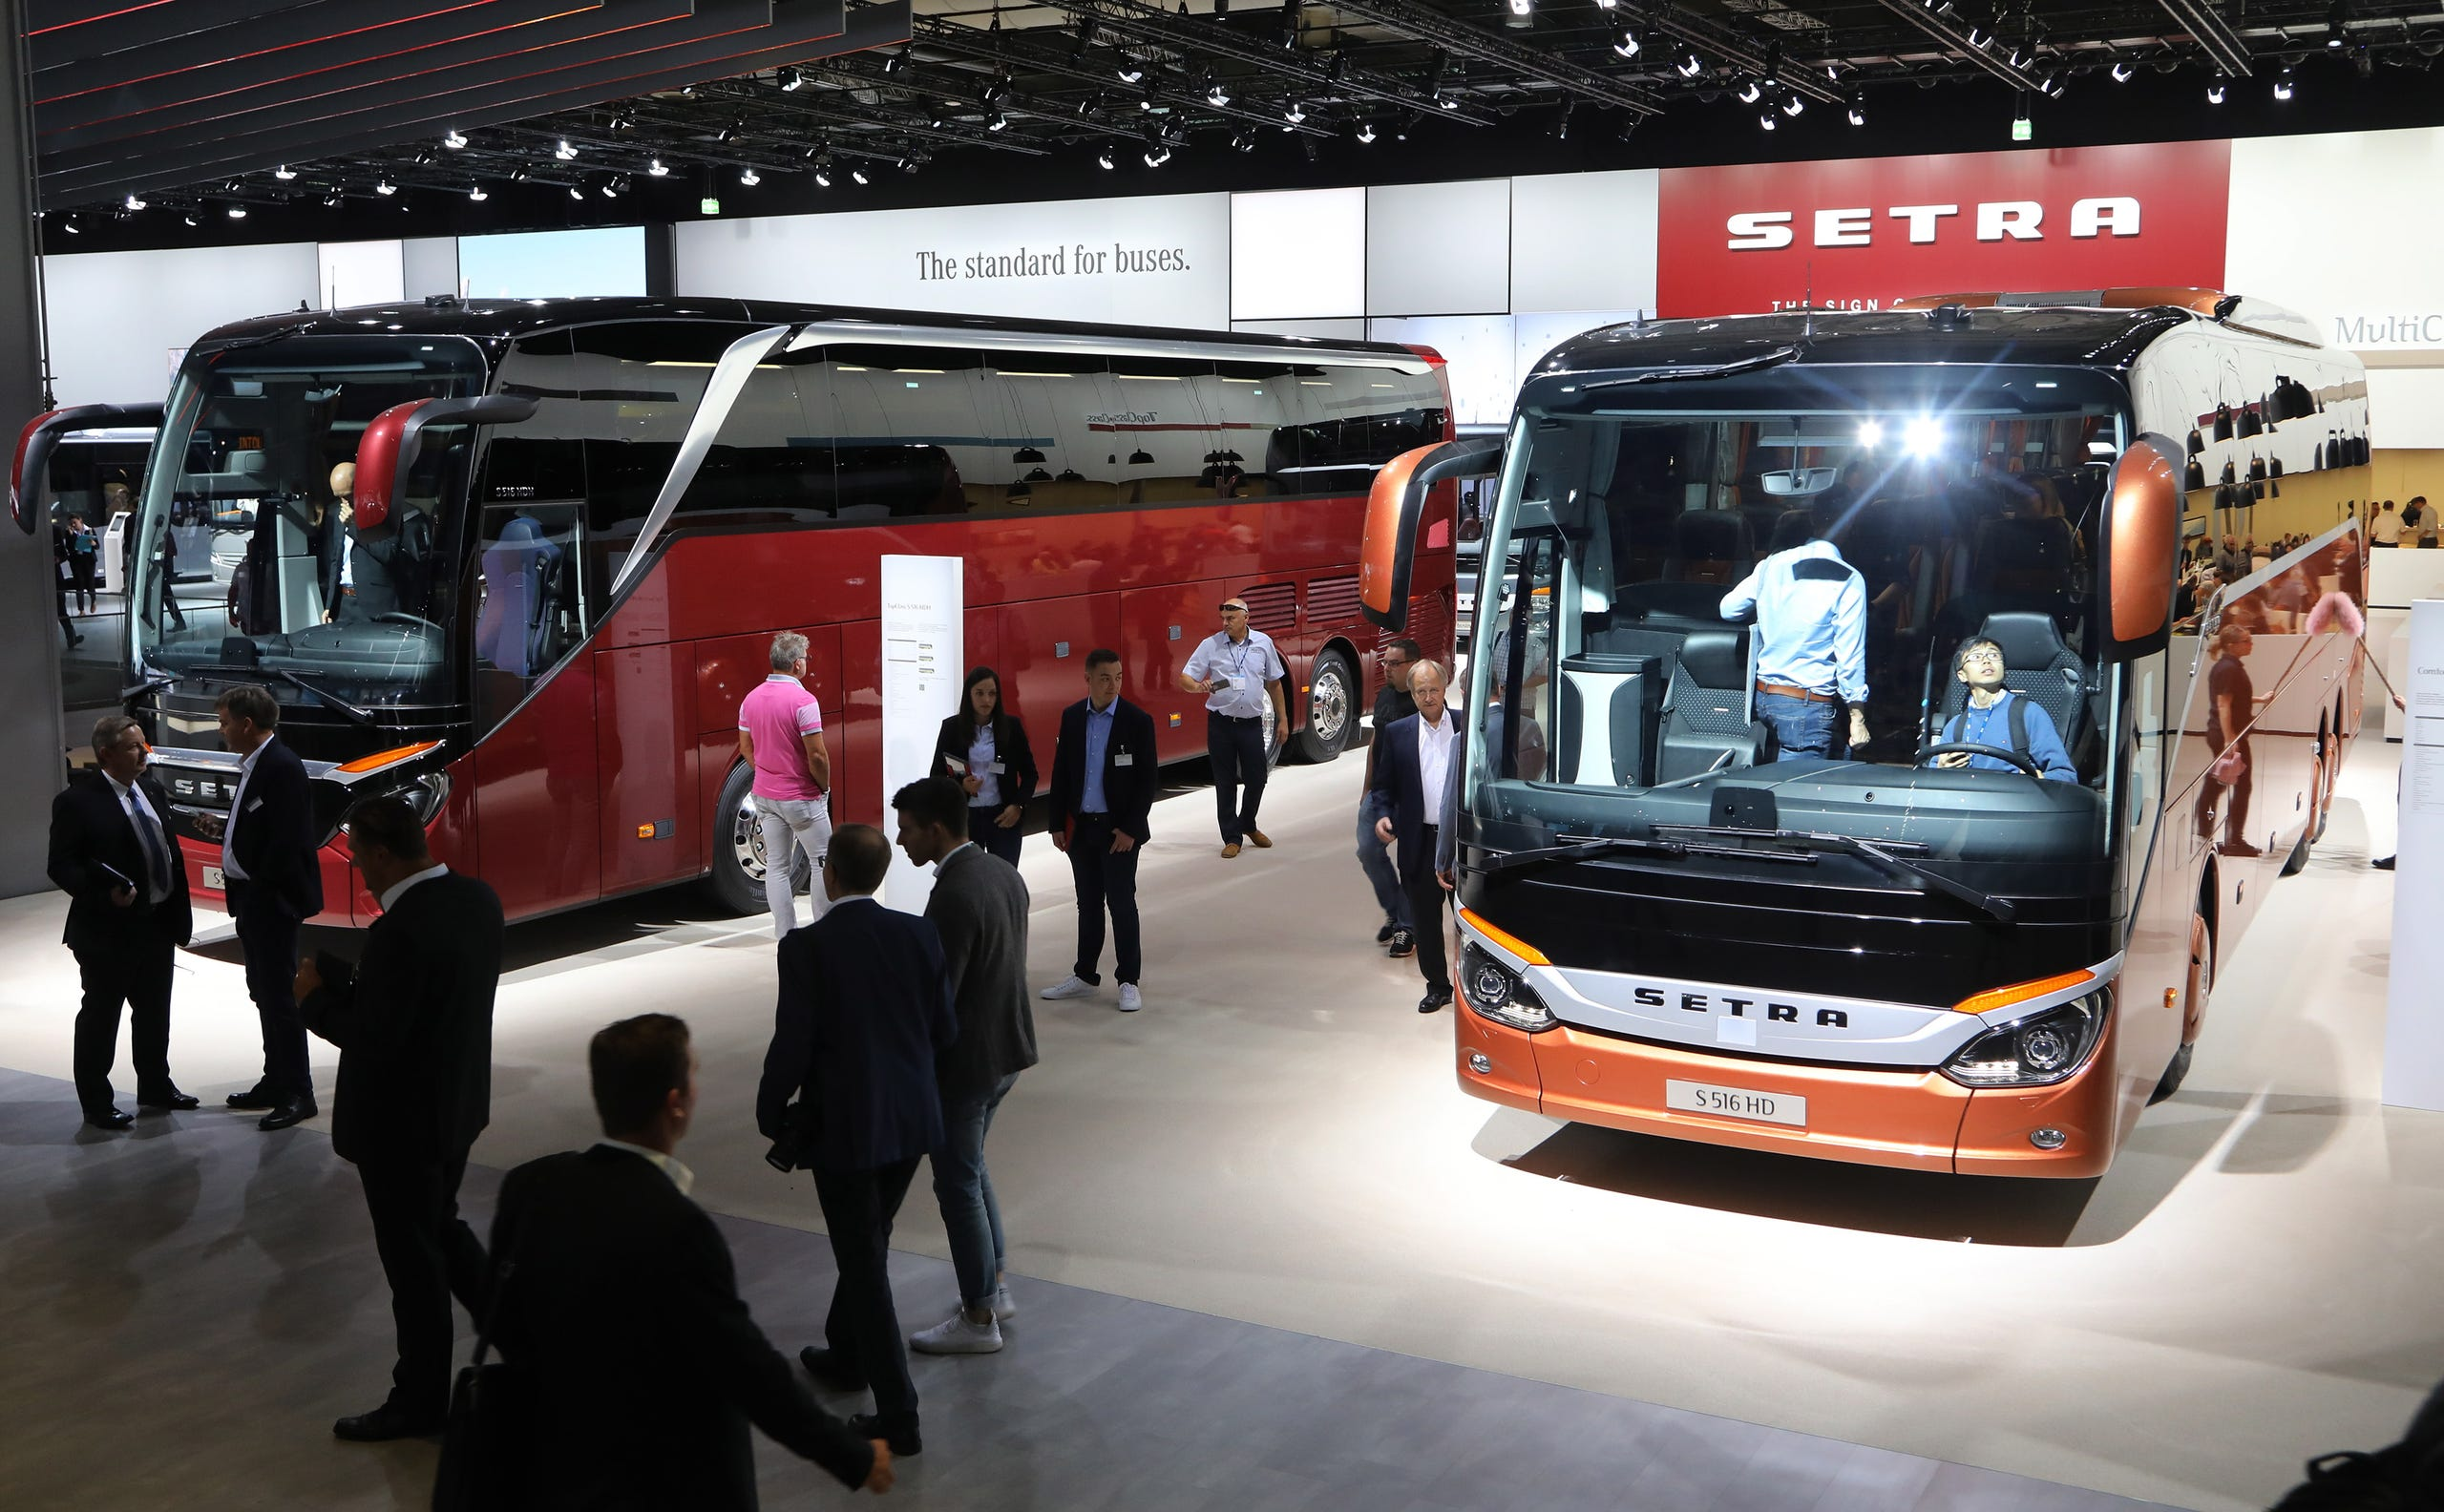 a49d1ecccb Buses at the Setra booth.